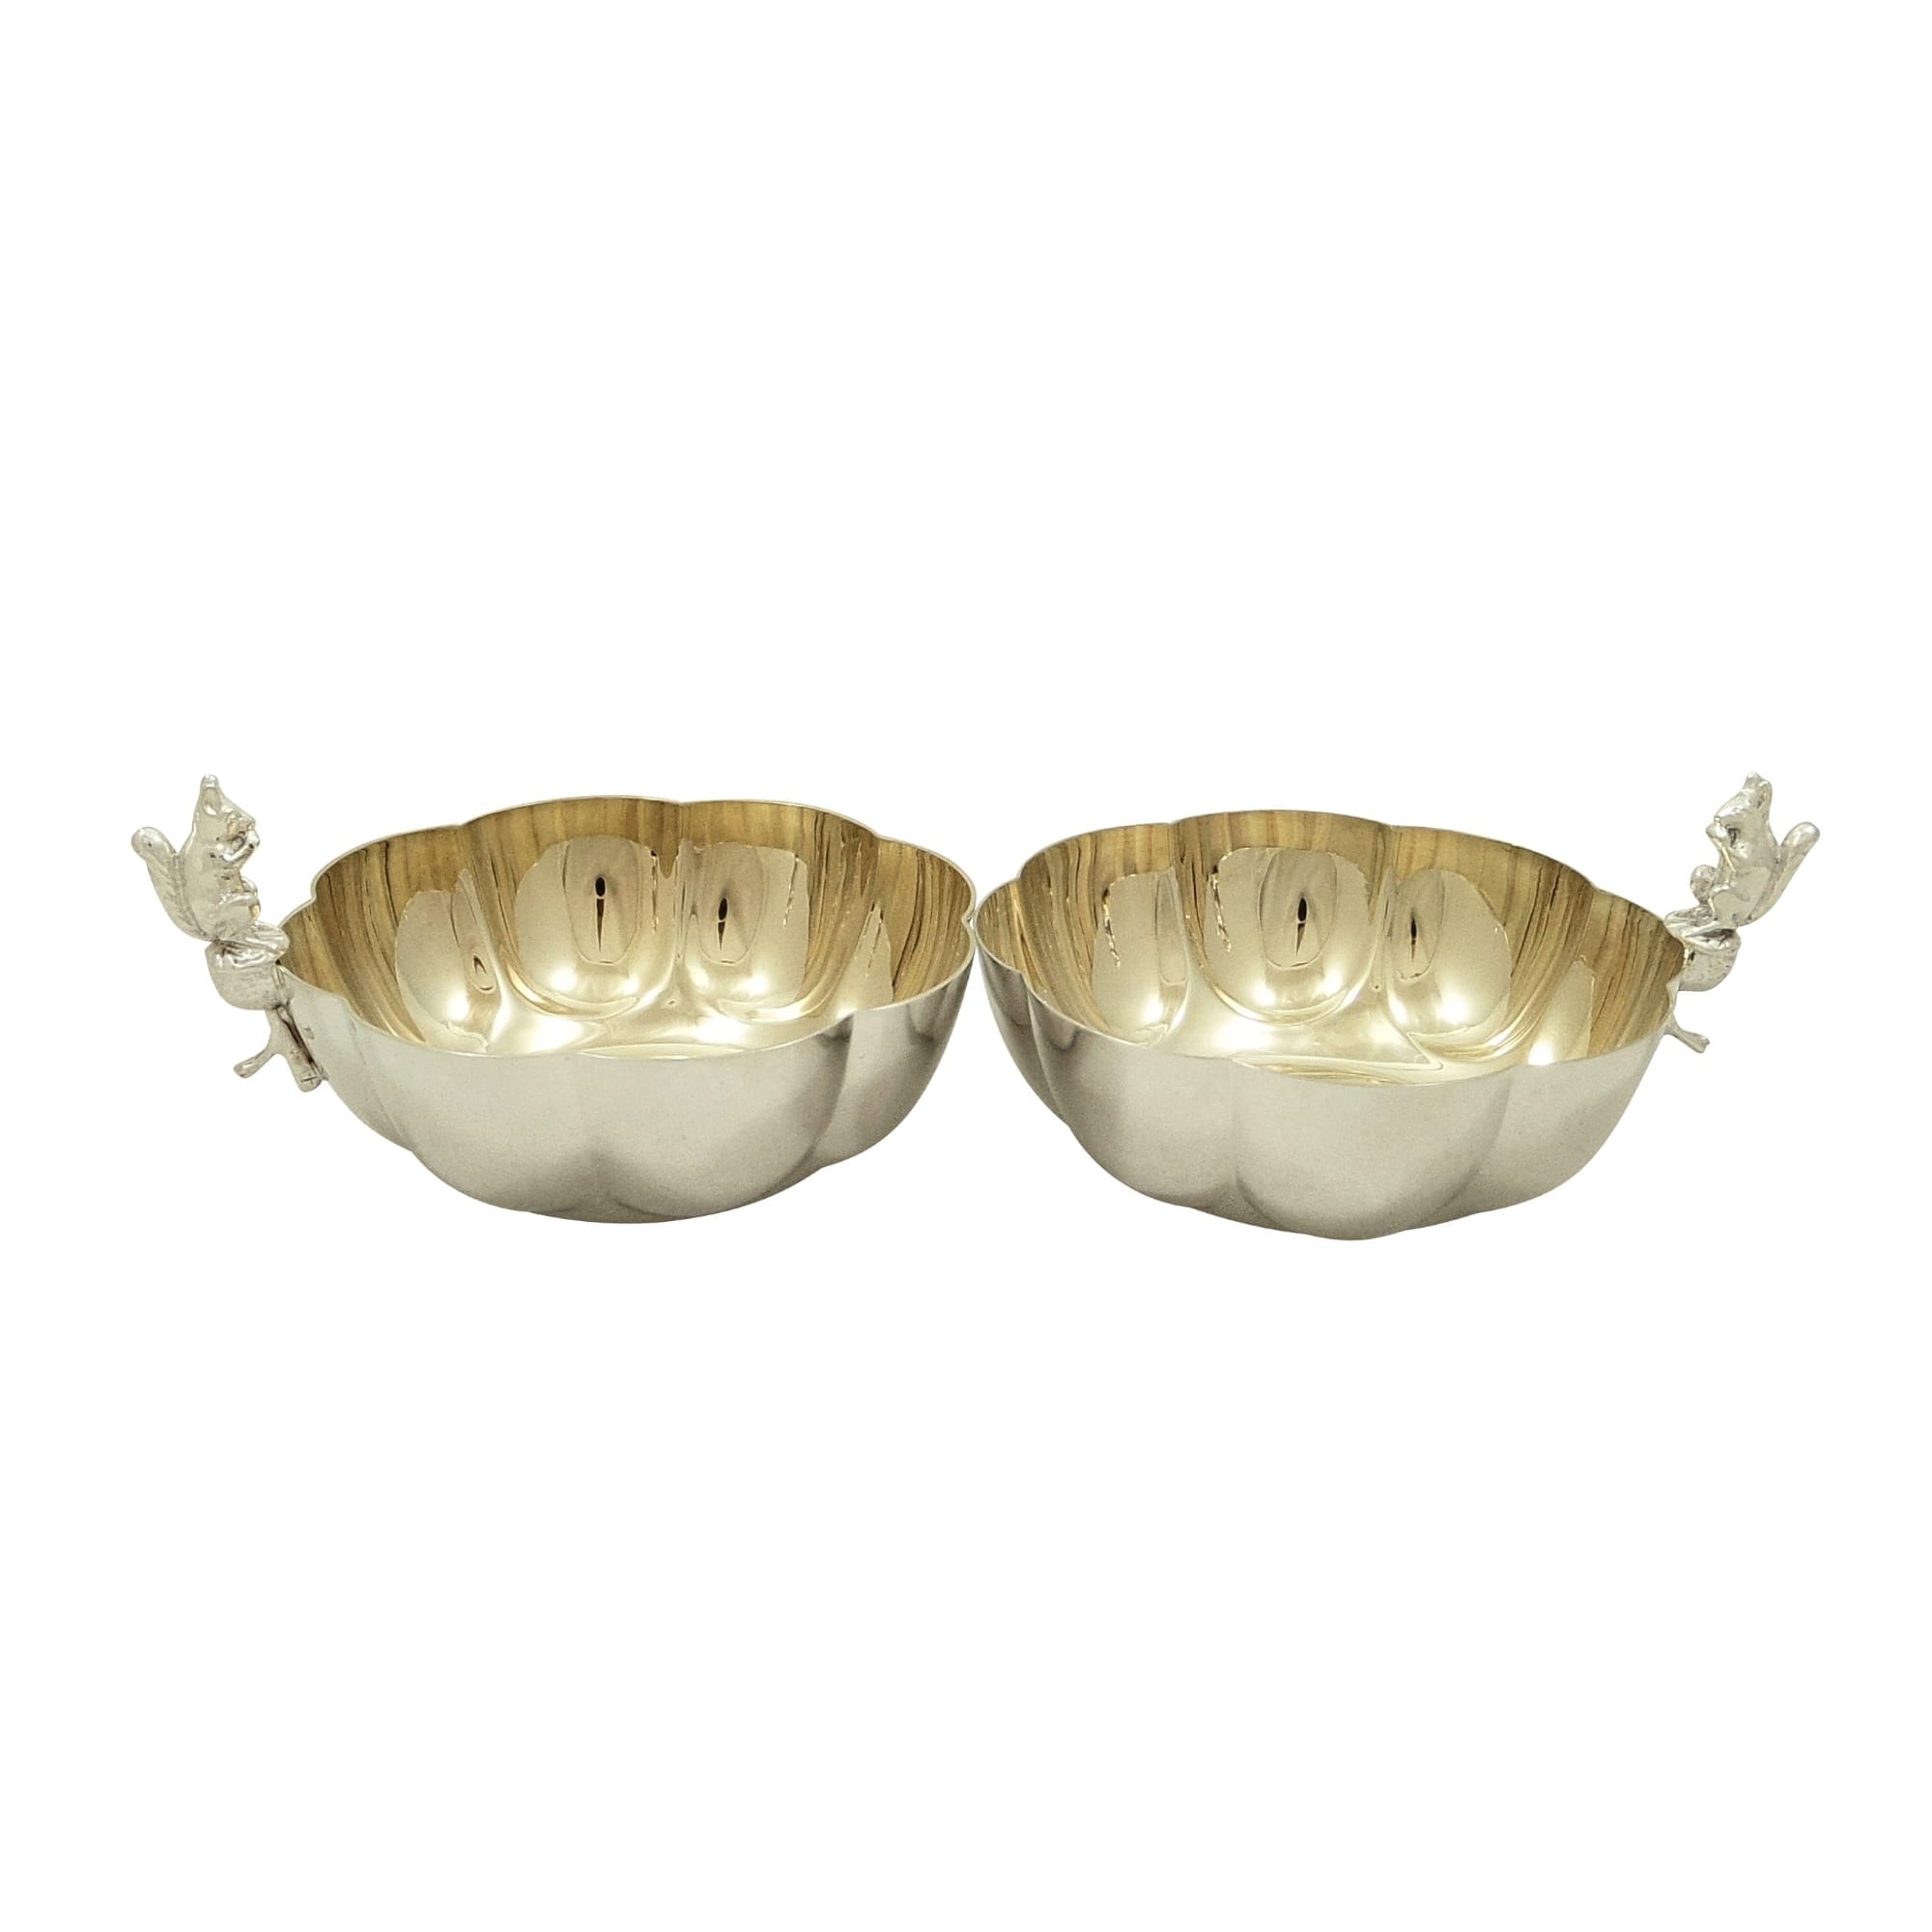 Pair of Antique Silver Plated Squirrel Nut Dishes / Bowls c1900